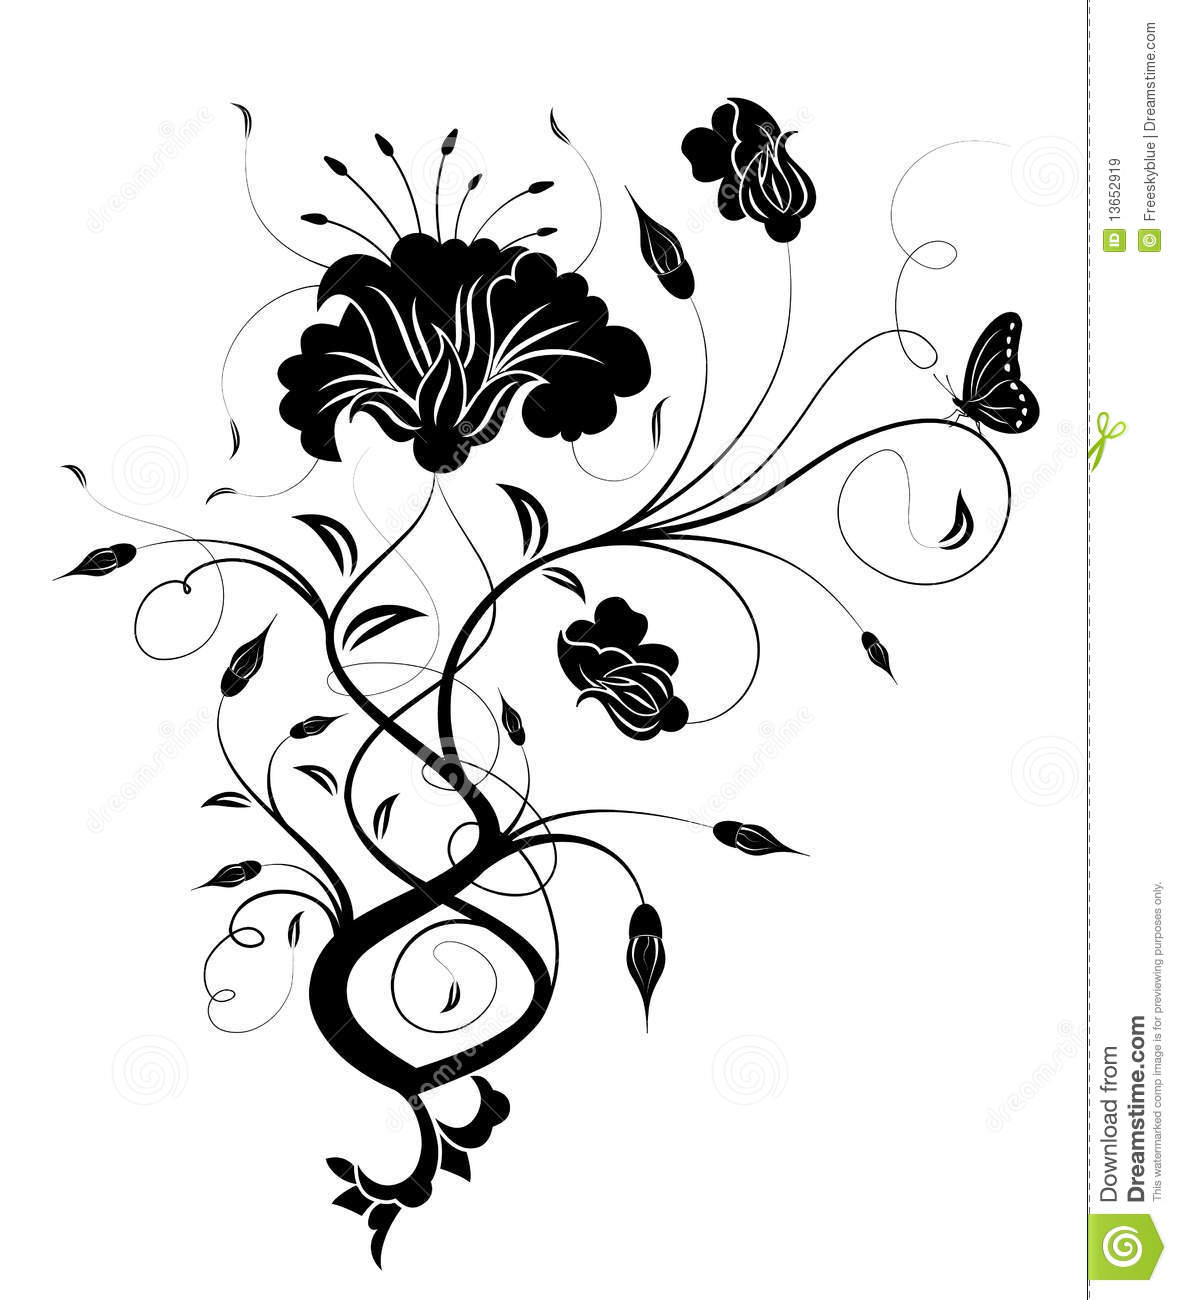 Black Flower Silhouette Pattern Royalty Free Stock Images: Black Flower Silhouette Royalty Free Stock Images